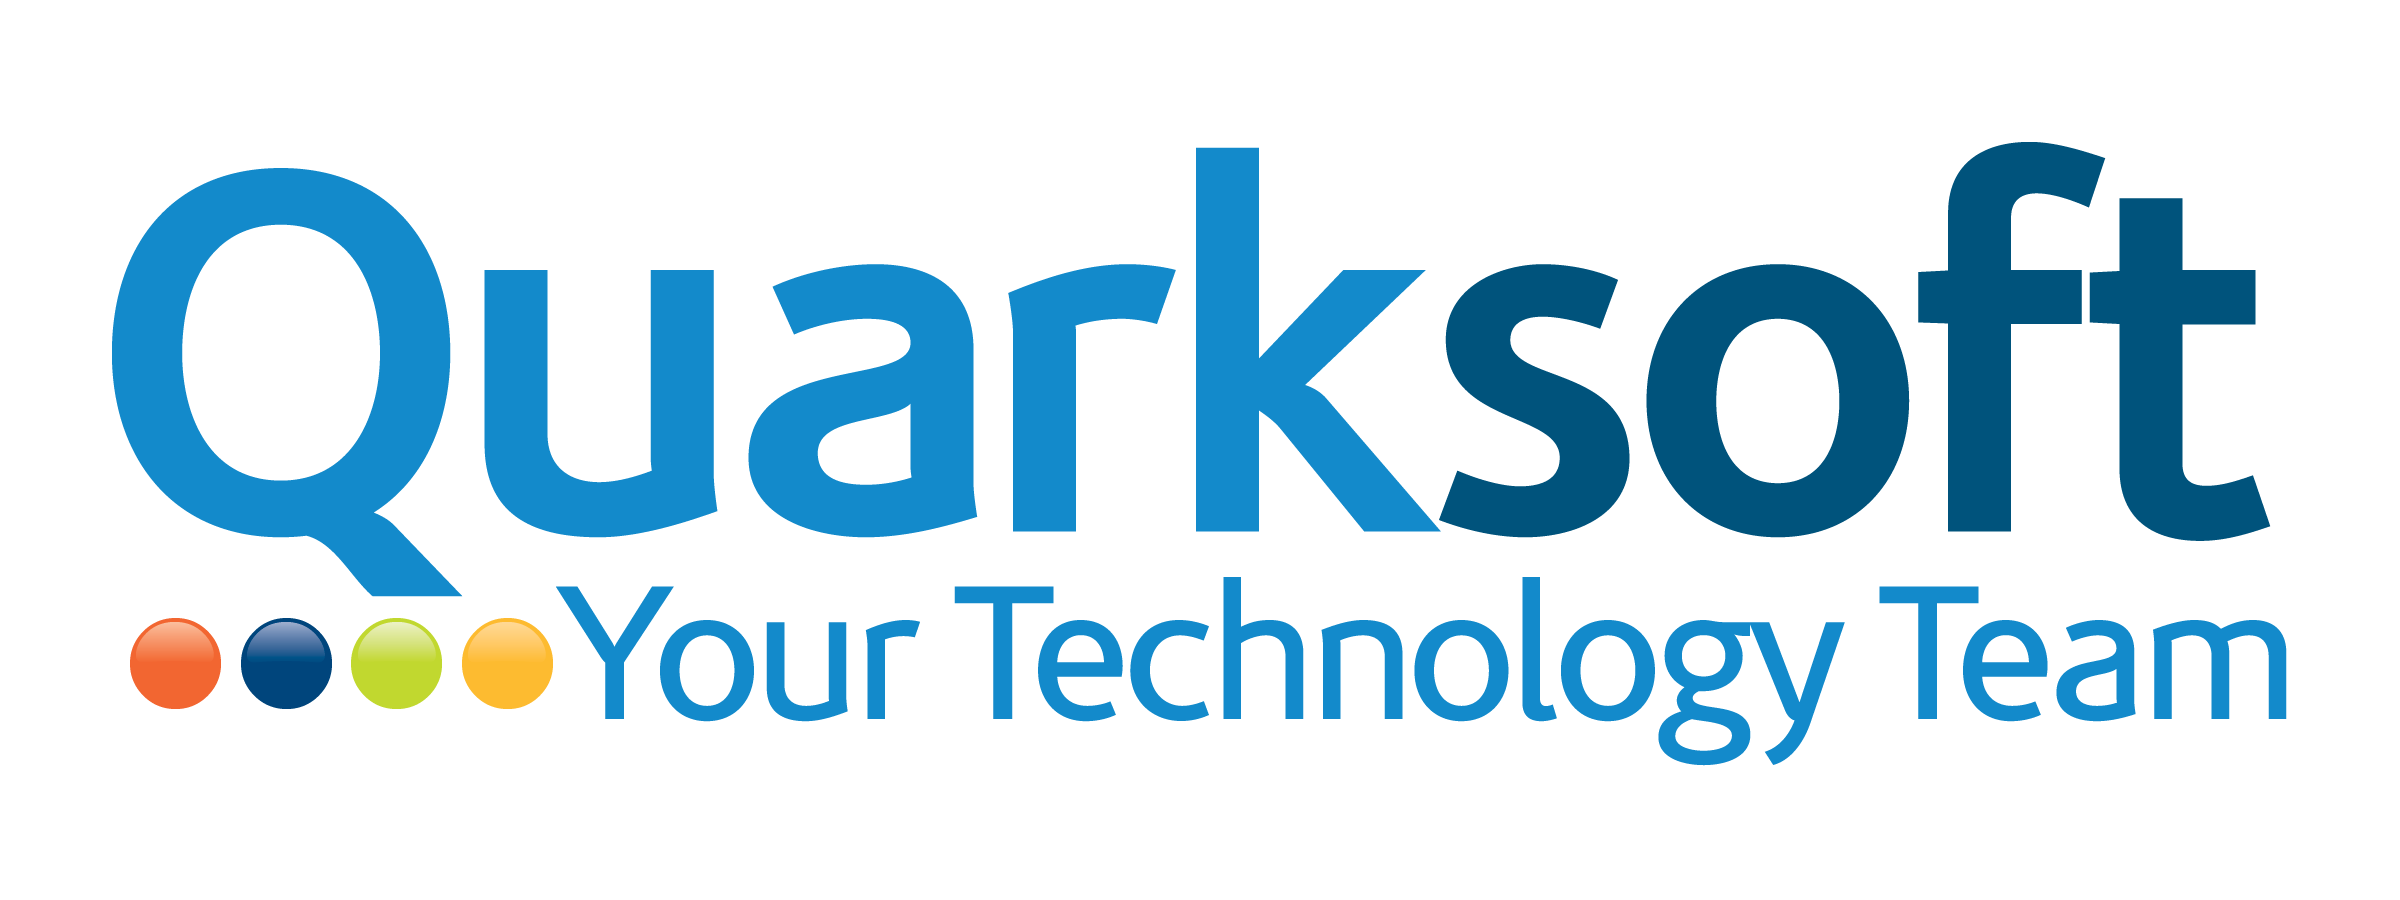 Technology Experts Quarksoft